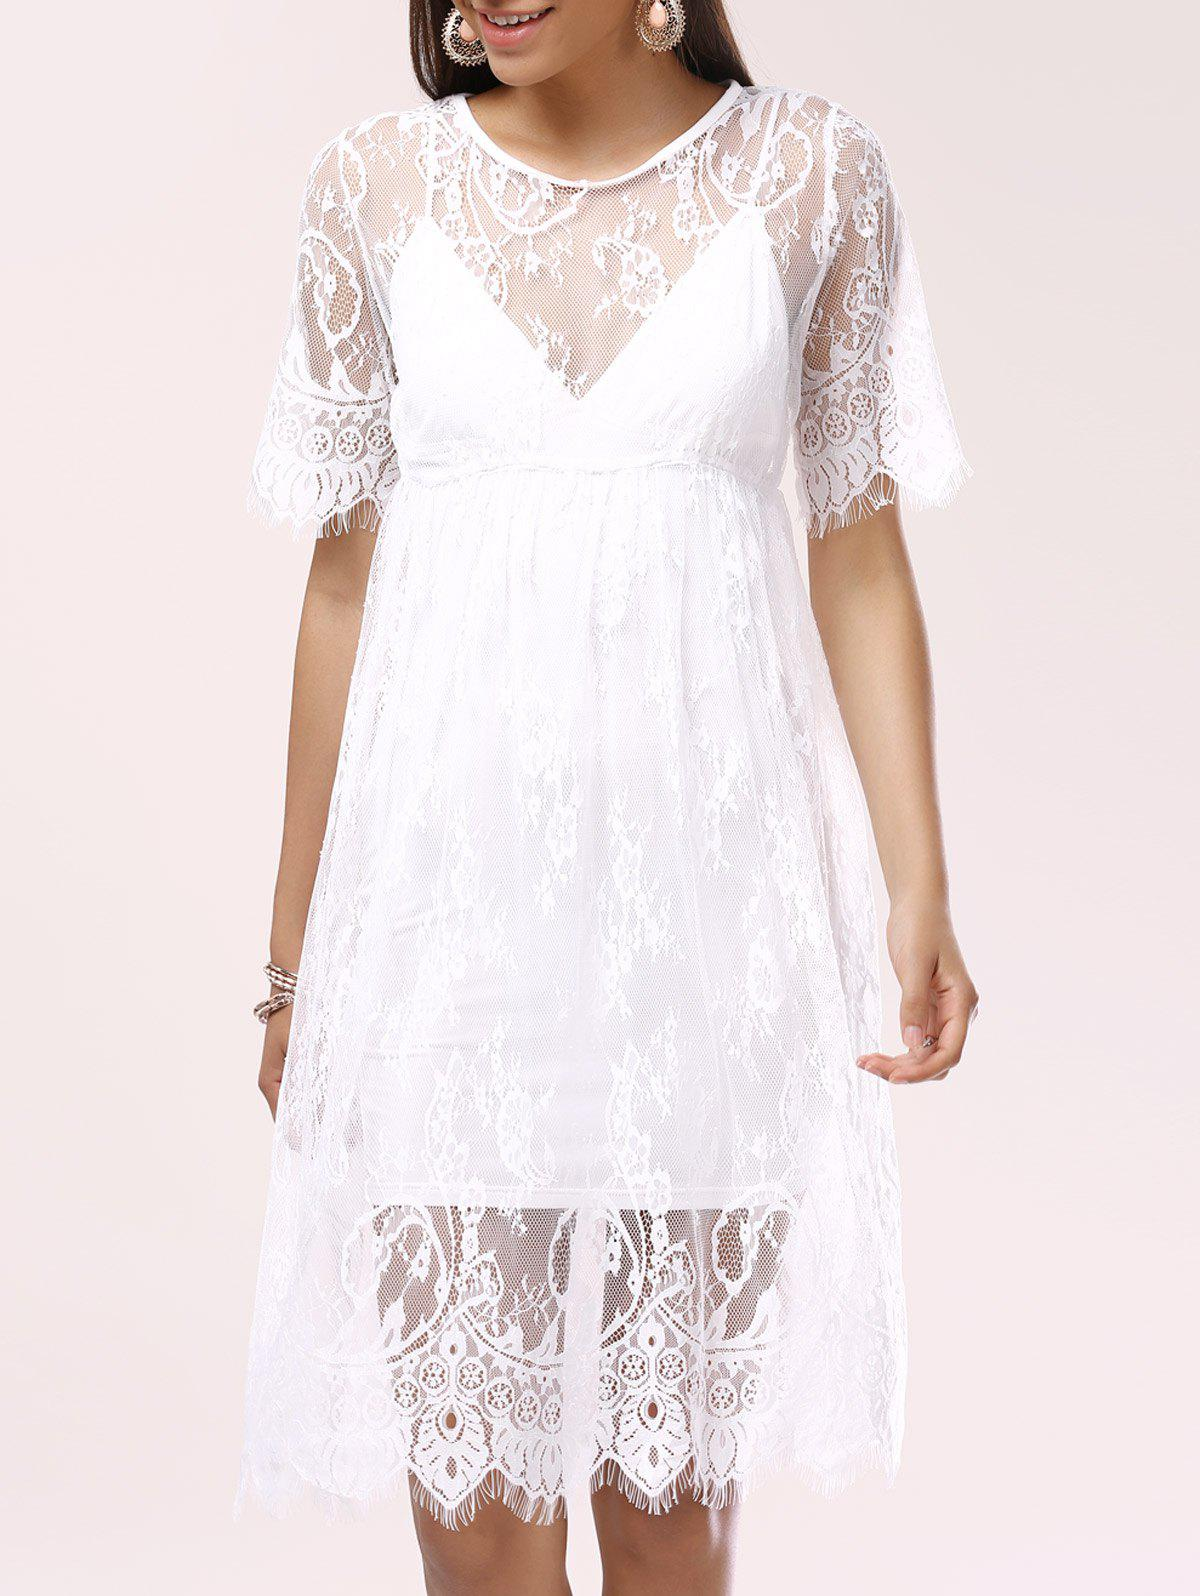 Charming See-Through Lace Women's Cover-Up - WHITE ONE SIZE